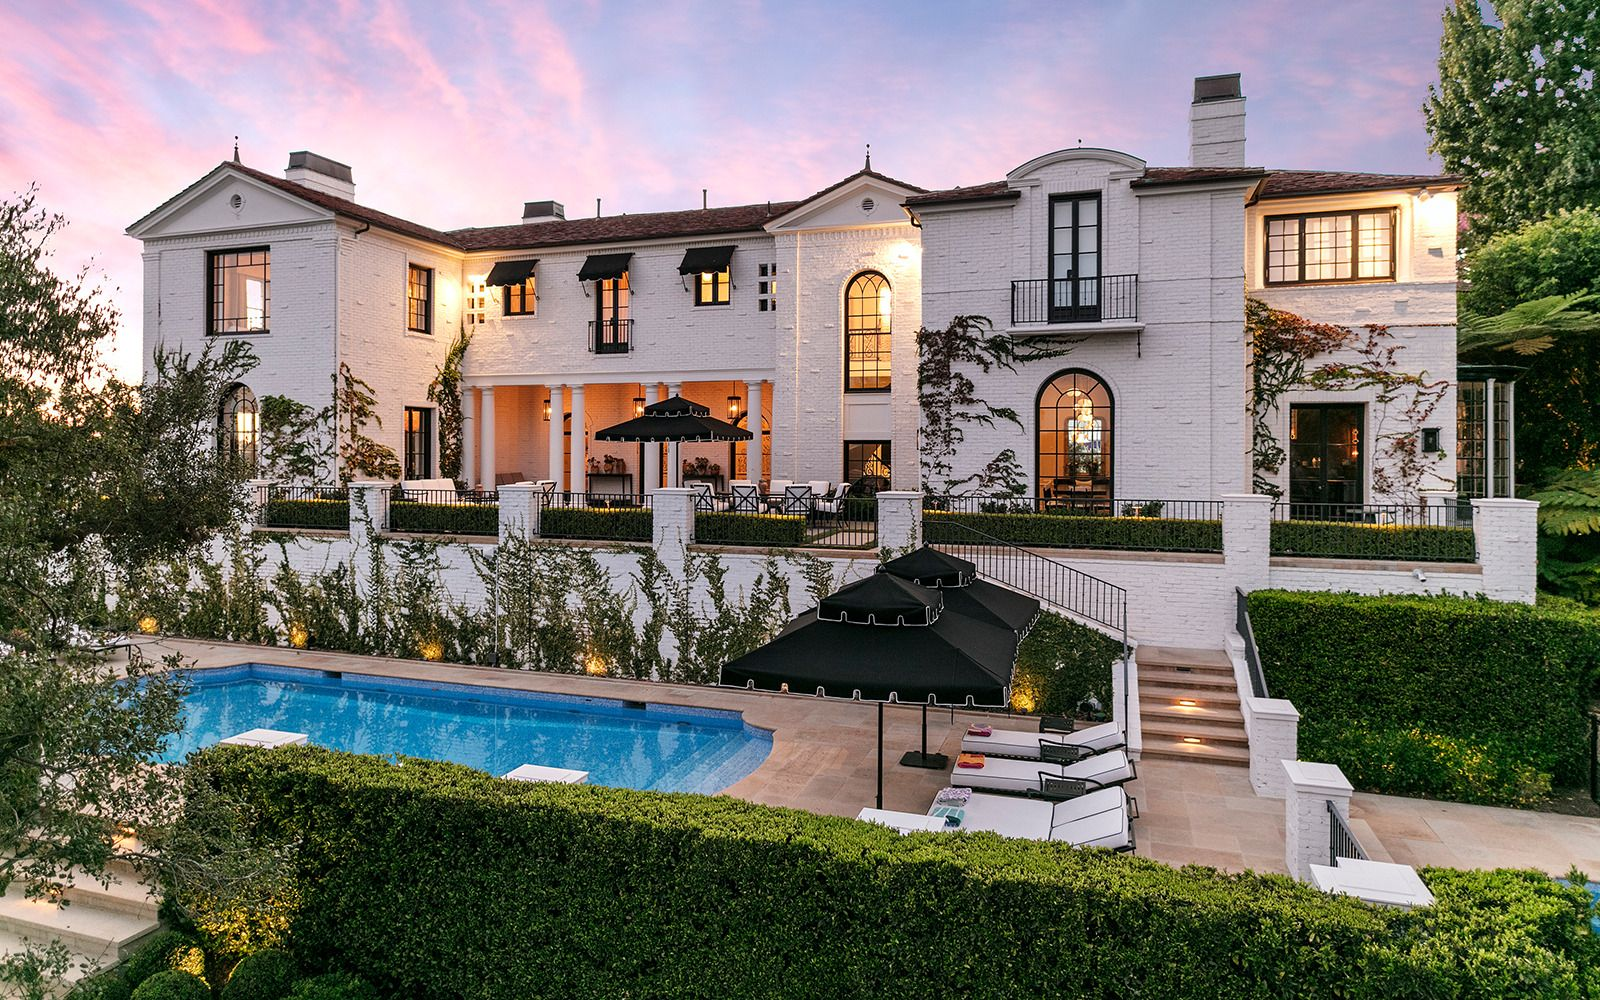 Estate, a Luxury Home for Sale in Los Angeles